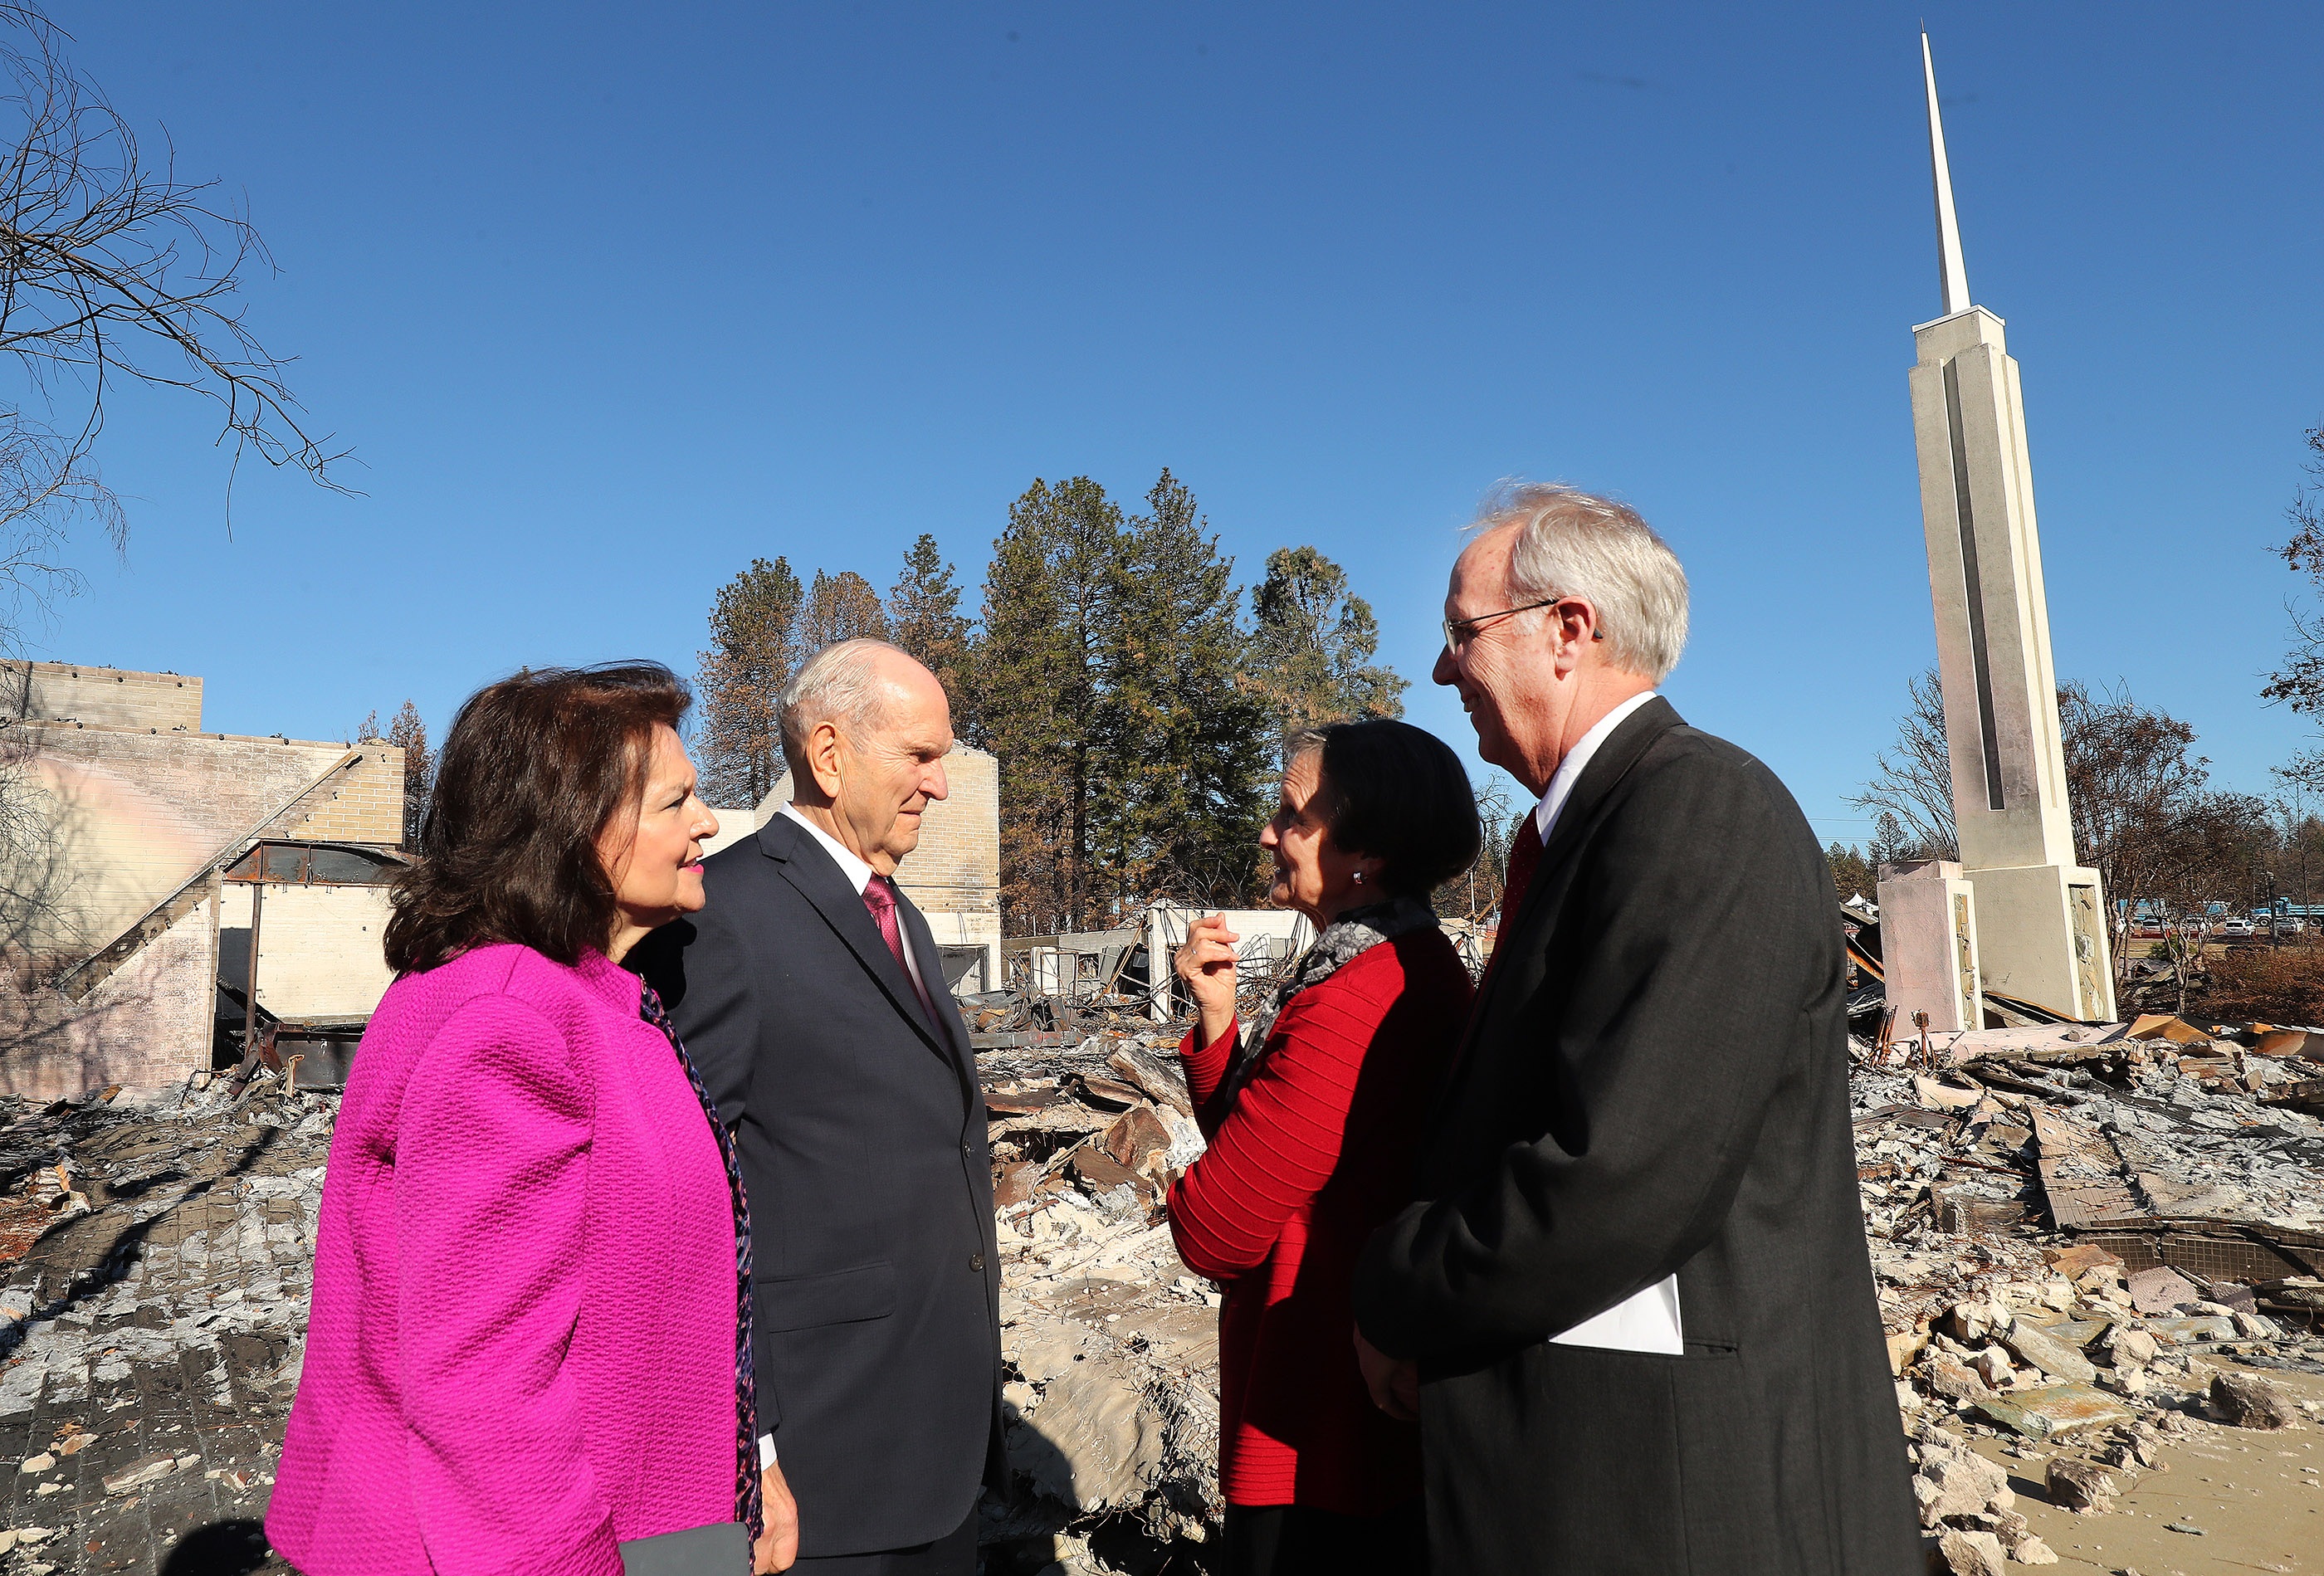 President Russell M. Nelson of The Church of Jesus Christ of Latter-day Saints and his wife, Sister Wendy Nelson, talk with fire victims Rick and Kathie Turner by the burned chapel in Paradise, California, on Sunday, Jan. 13, 2019, two months after the Camp Fire destroyed 1,400 homes and hundreds of businesses.